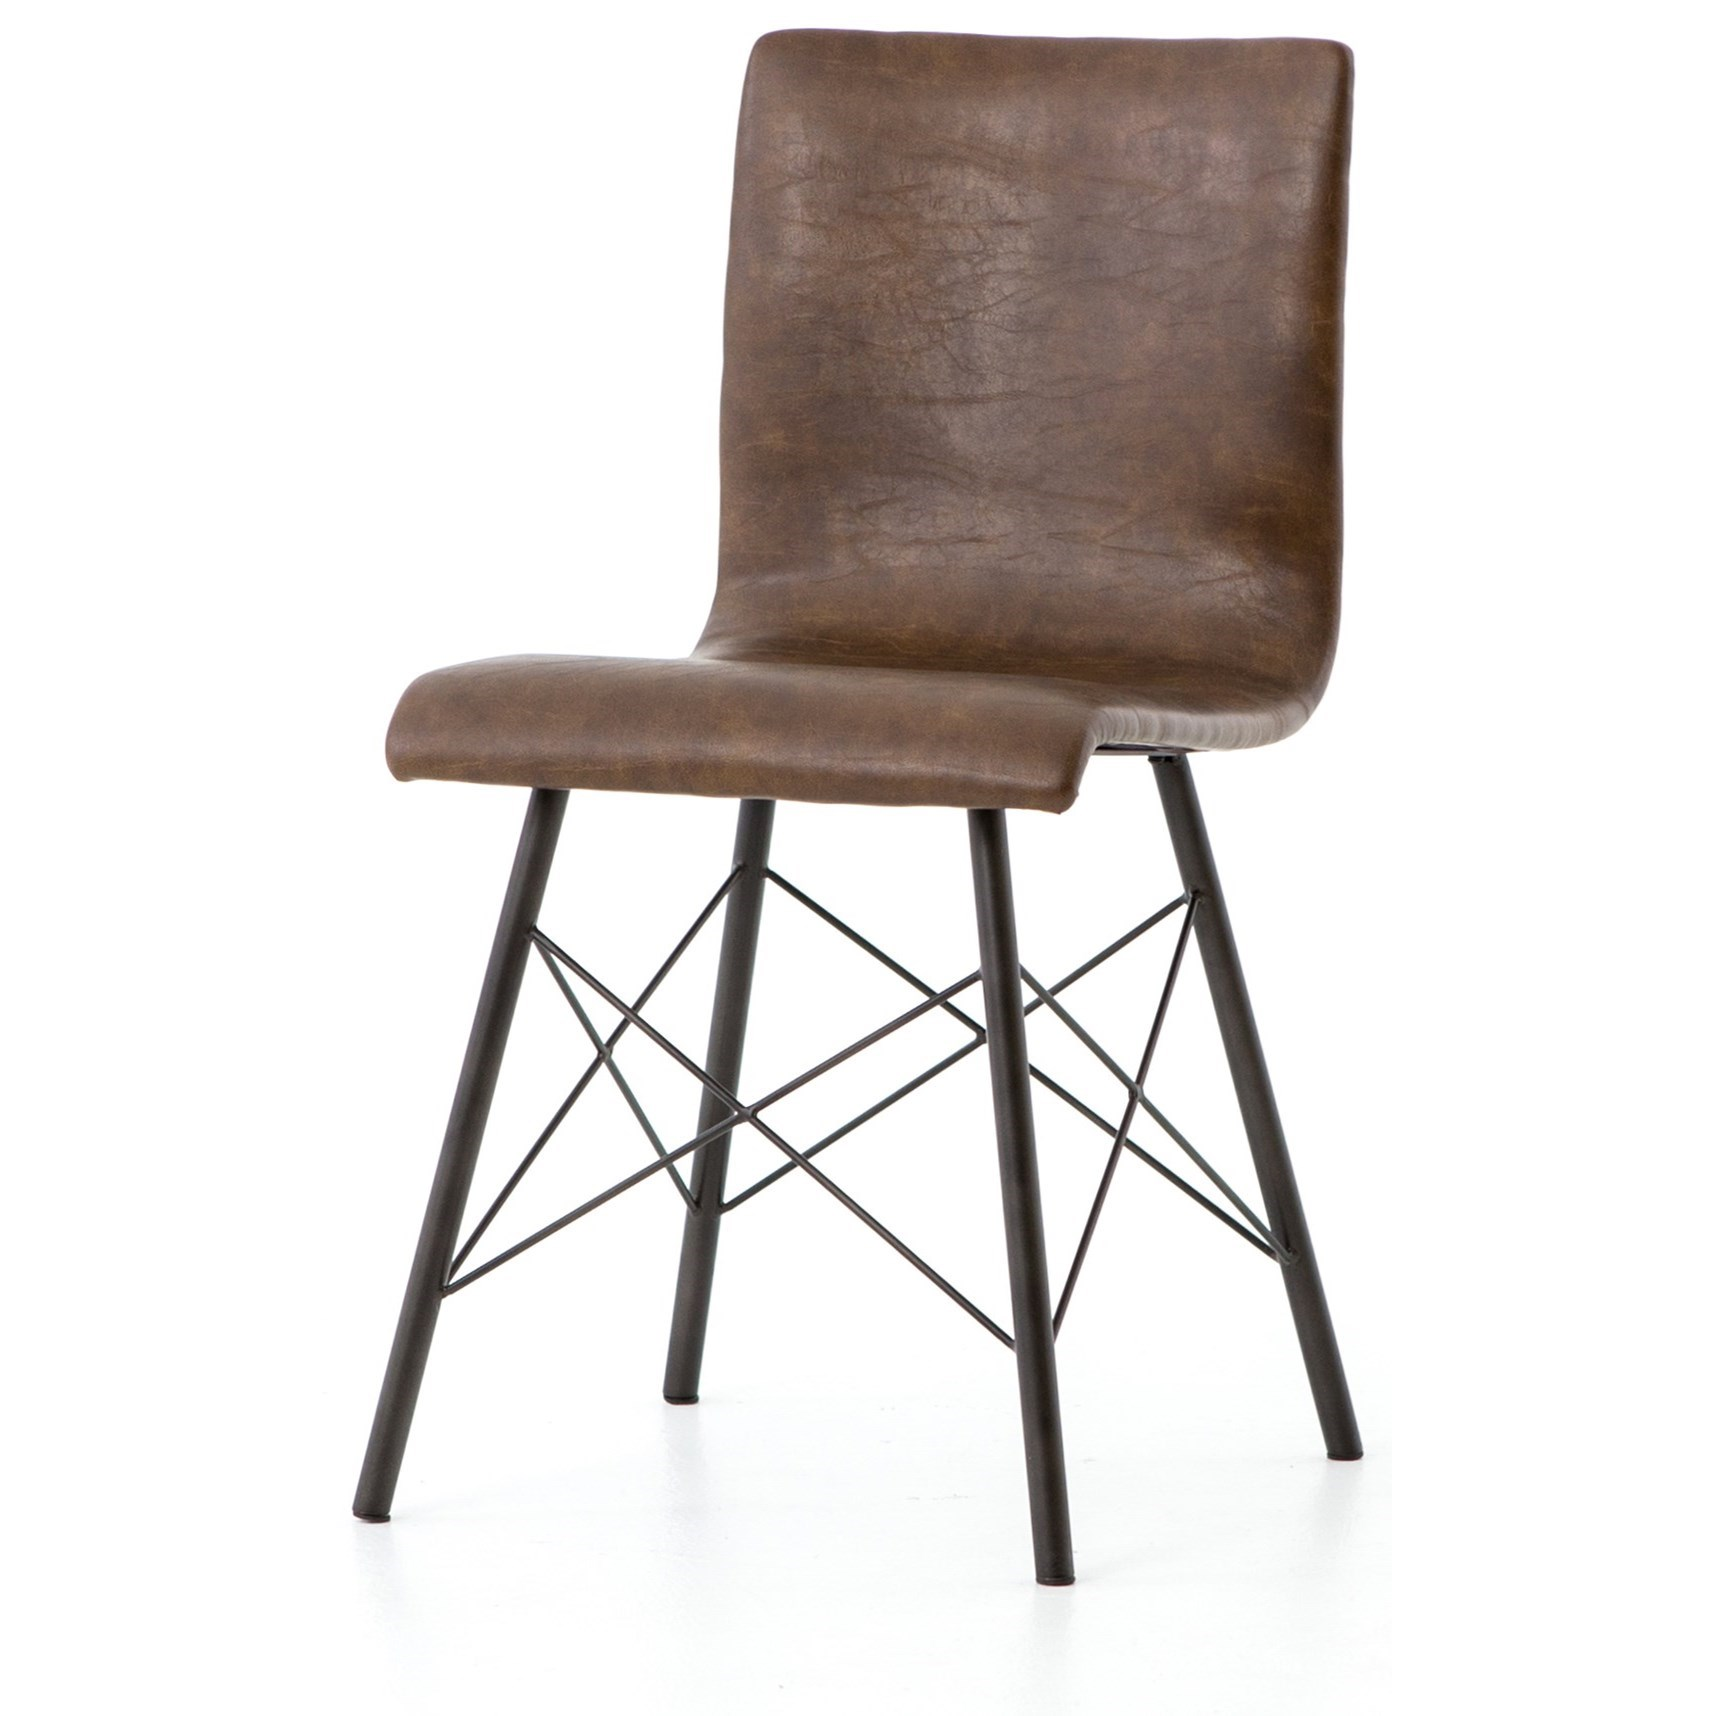 Four Hands Irondale Diaw Dining Chair With Leather Upholstery Belfort Furniture Dining Side